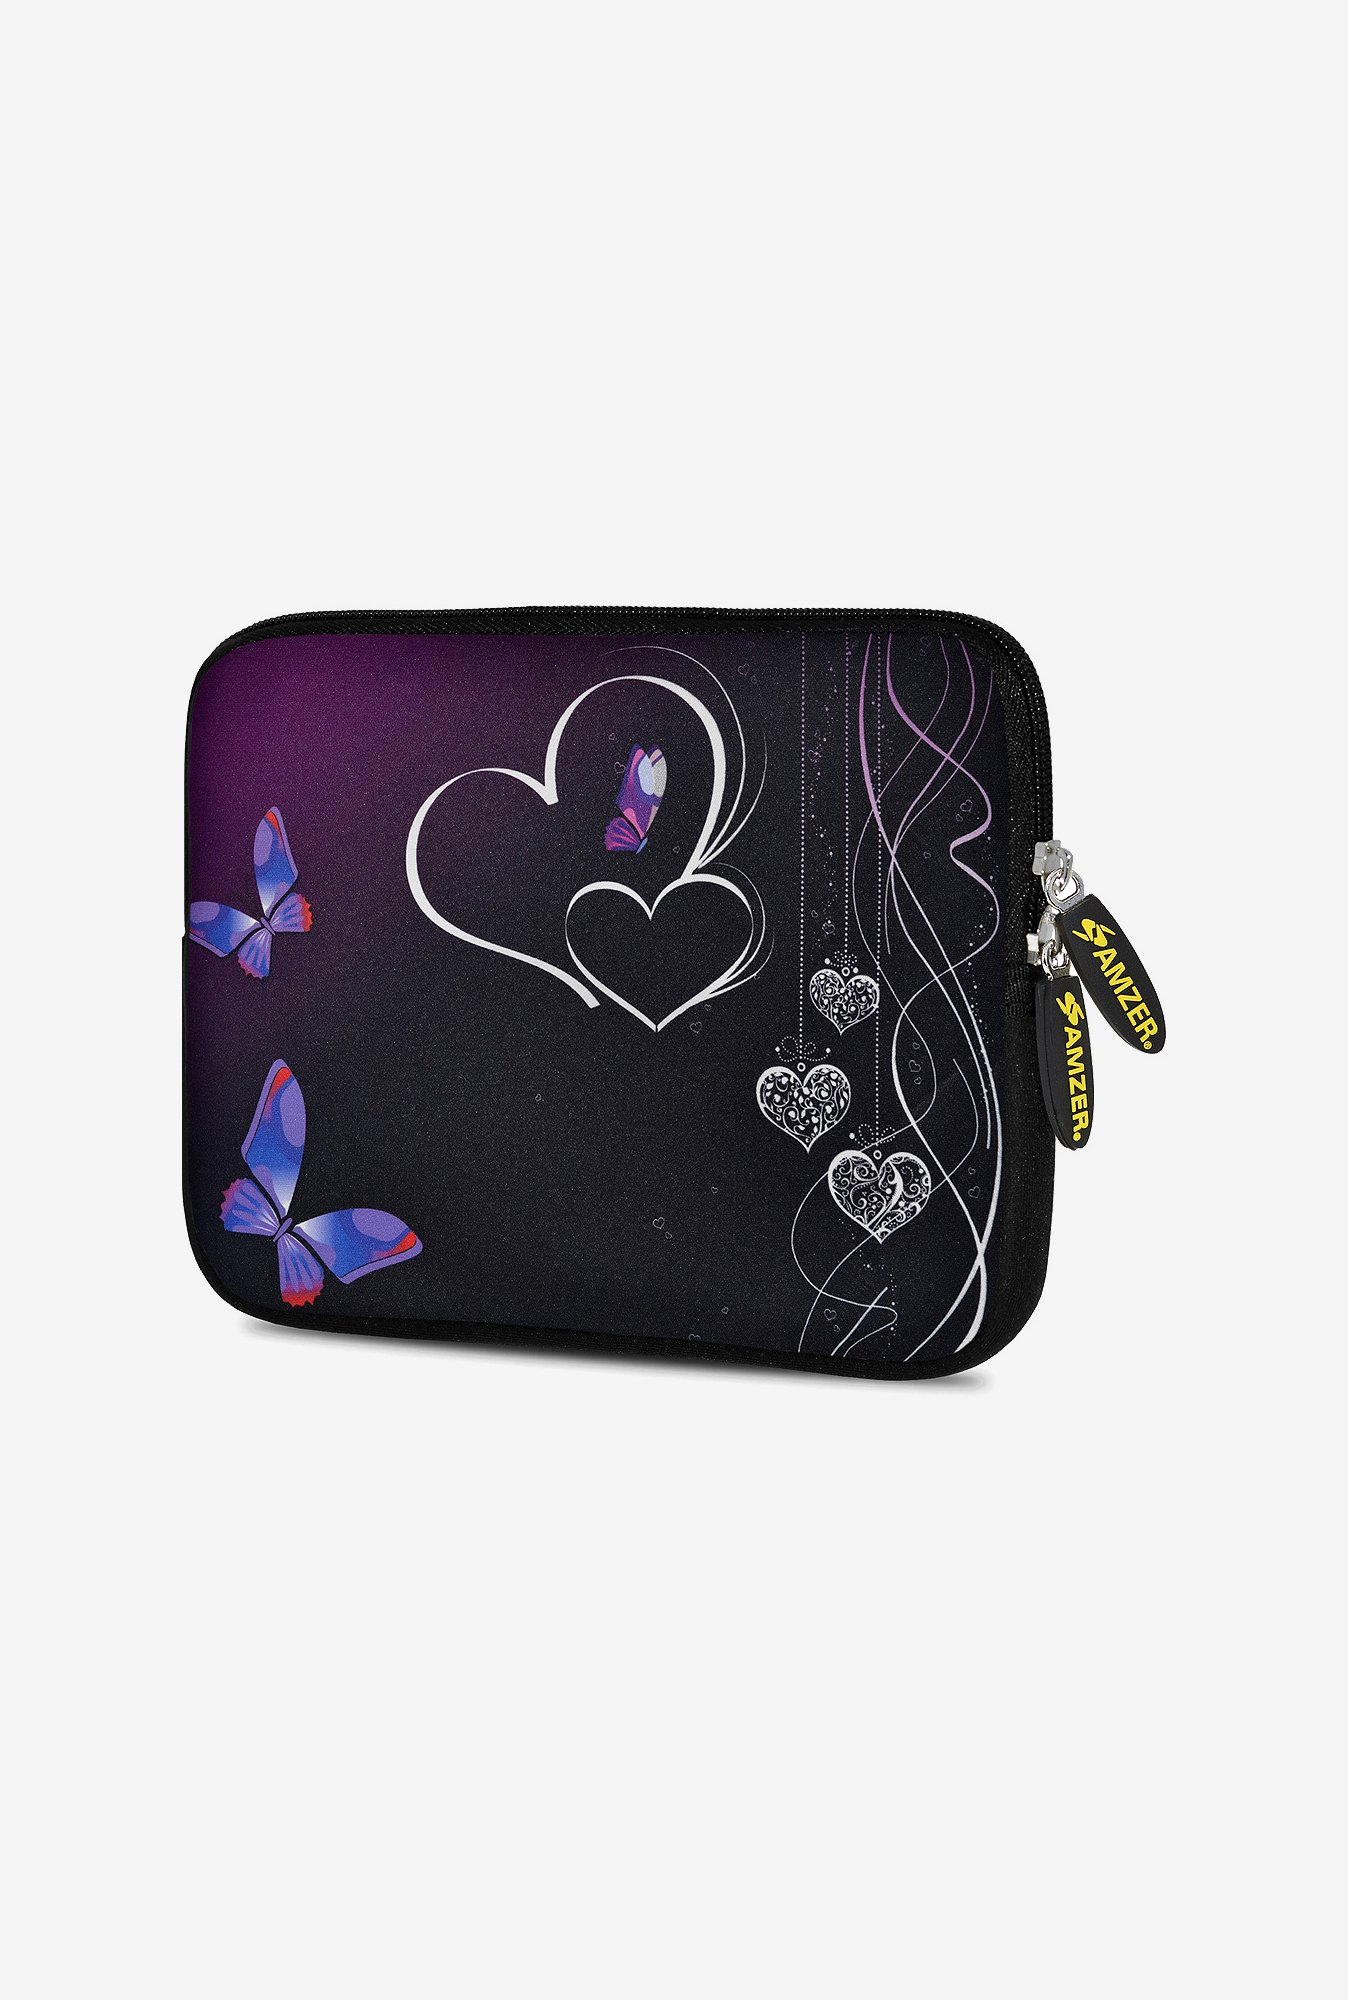 Amzer 10.5 Inch Neoprene Sleeve - Night Love